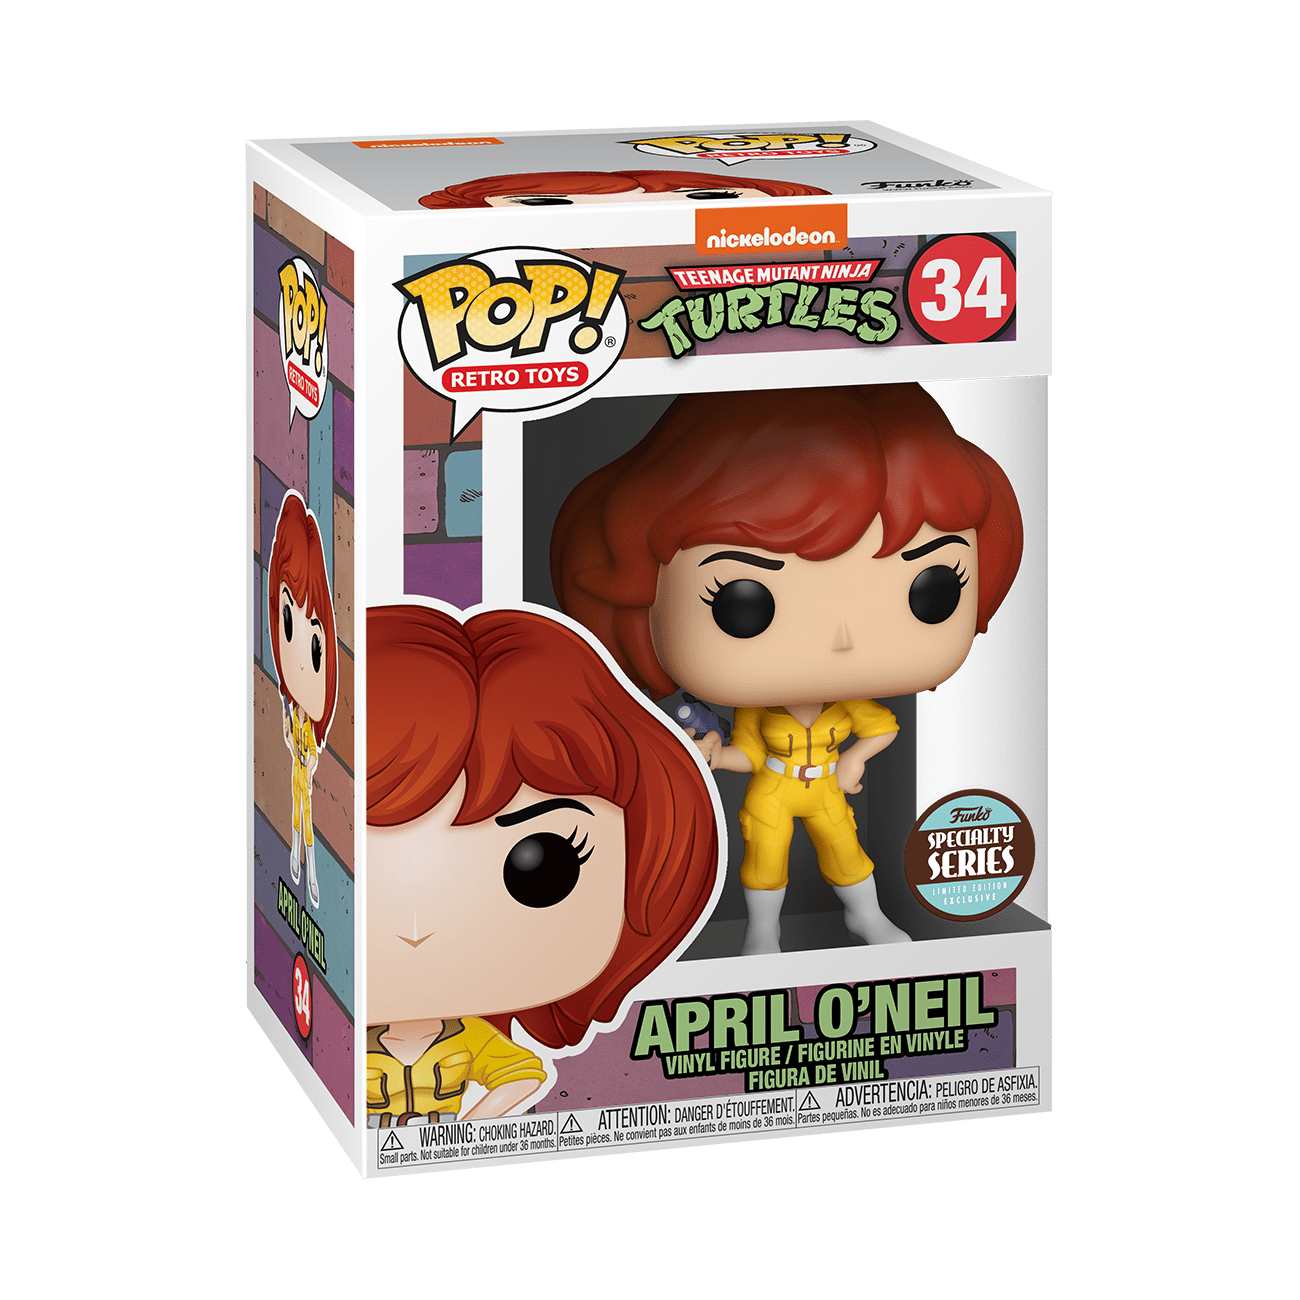 tmnt april oneil specialty series funko pop!